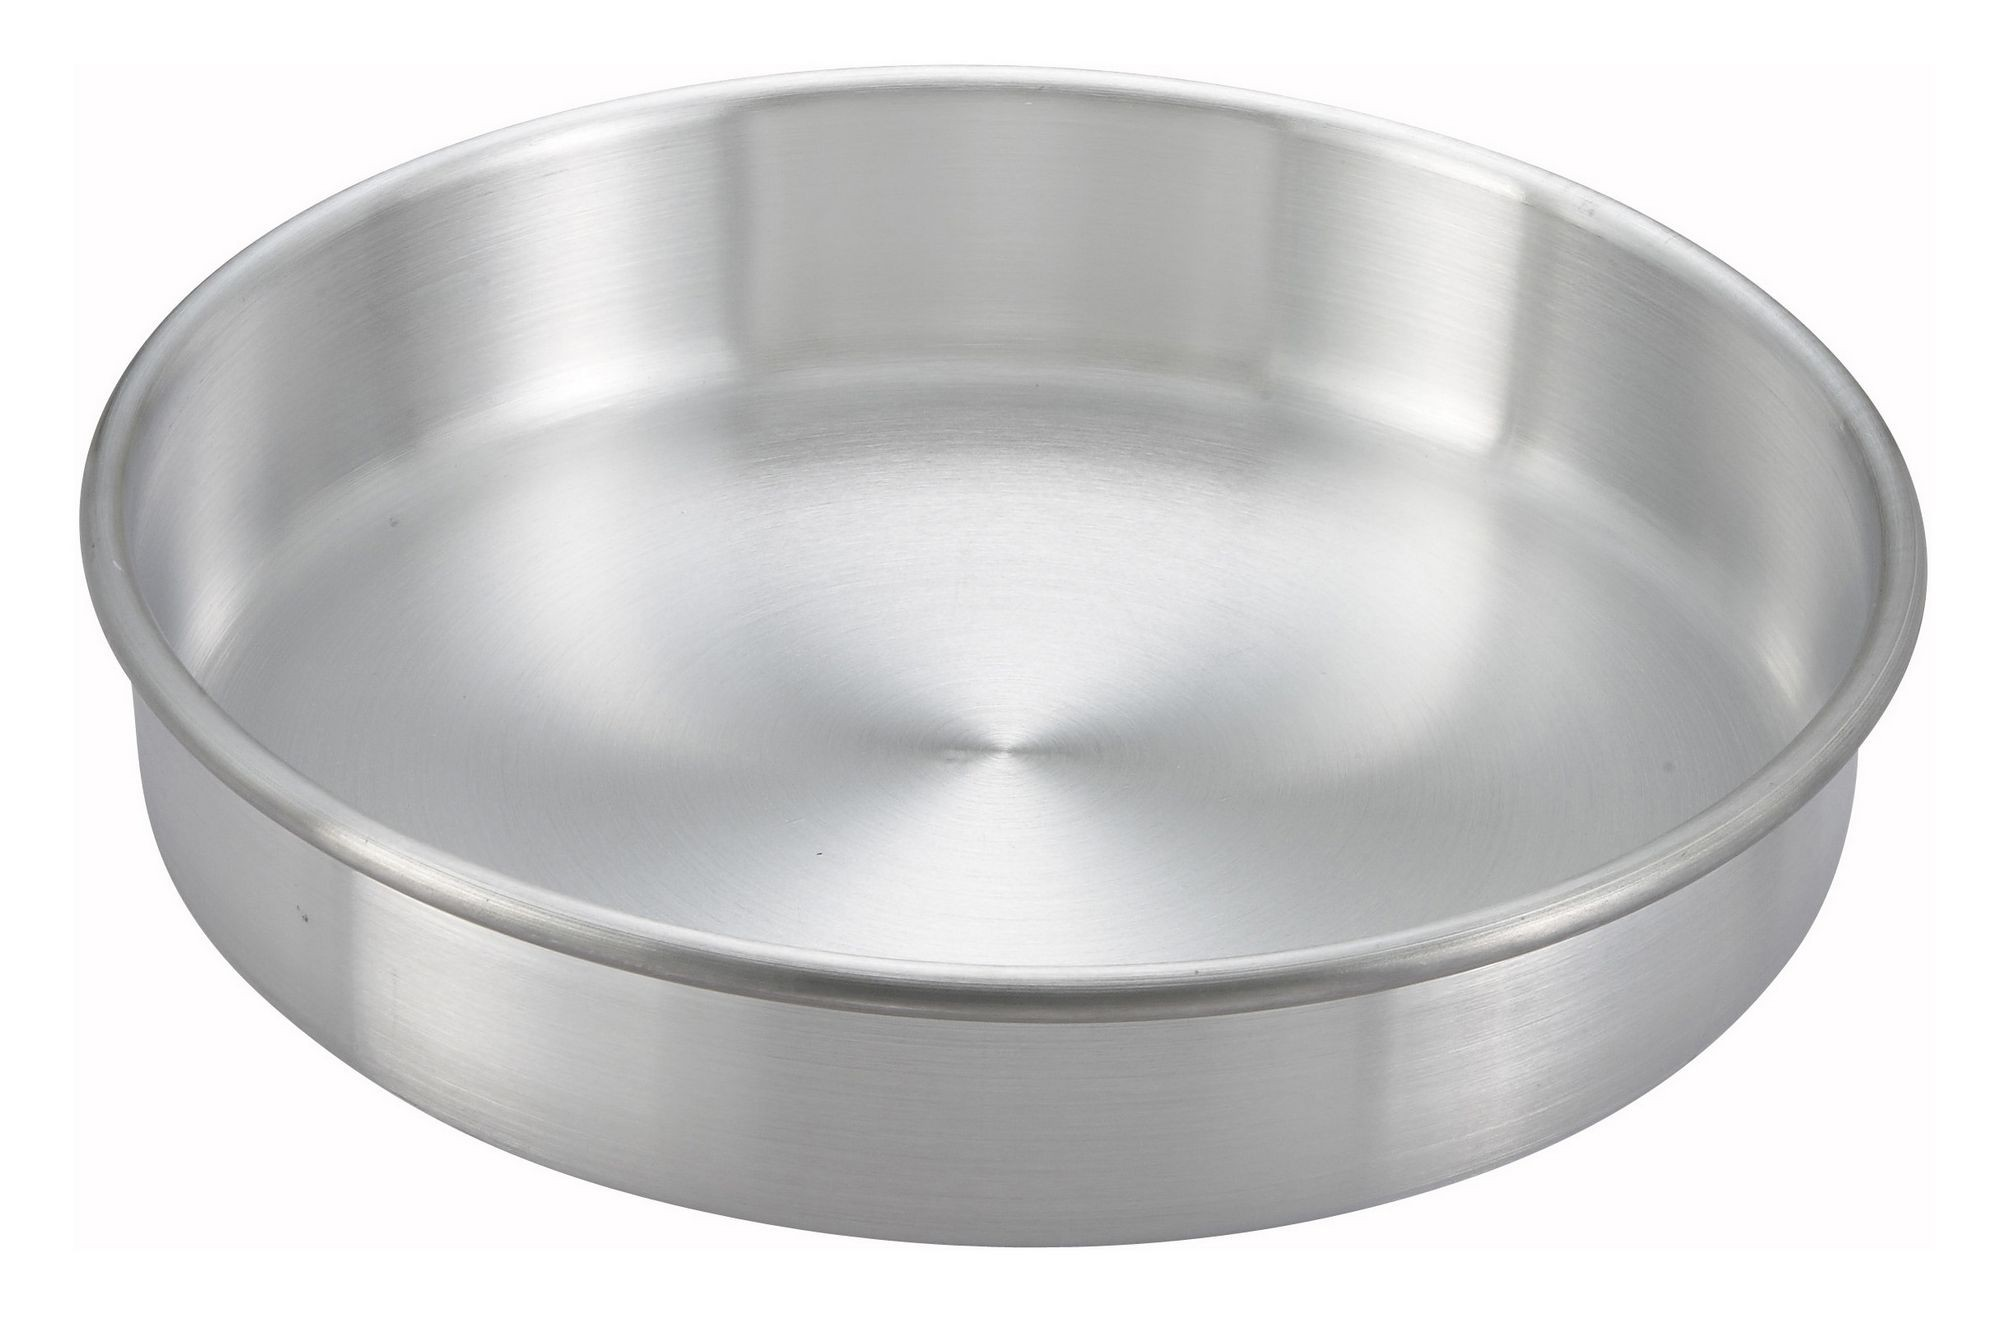 "Winco acp-103 Aluminum Layer Cake Pan 10"" x 3"""